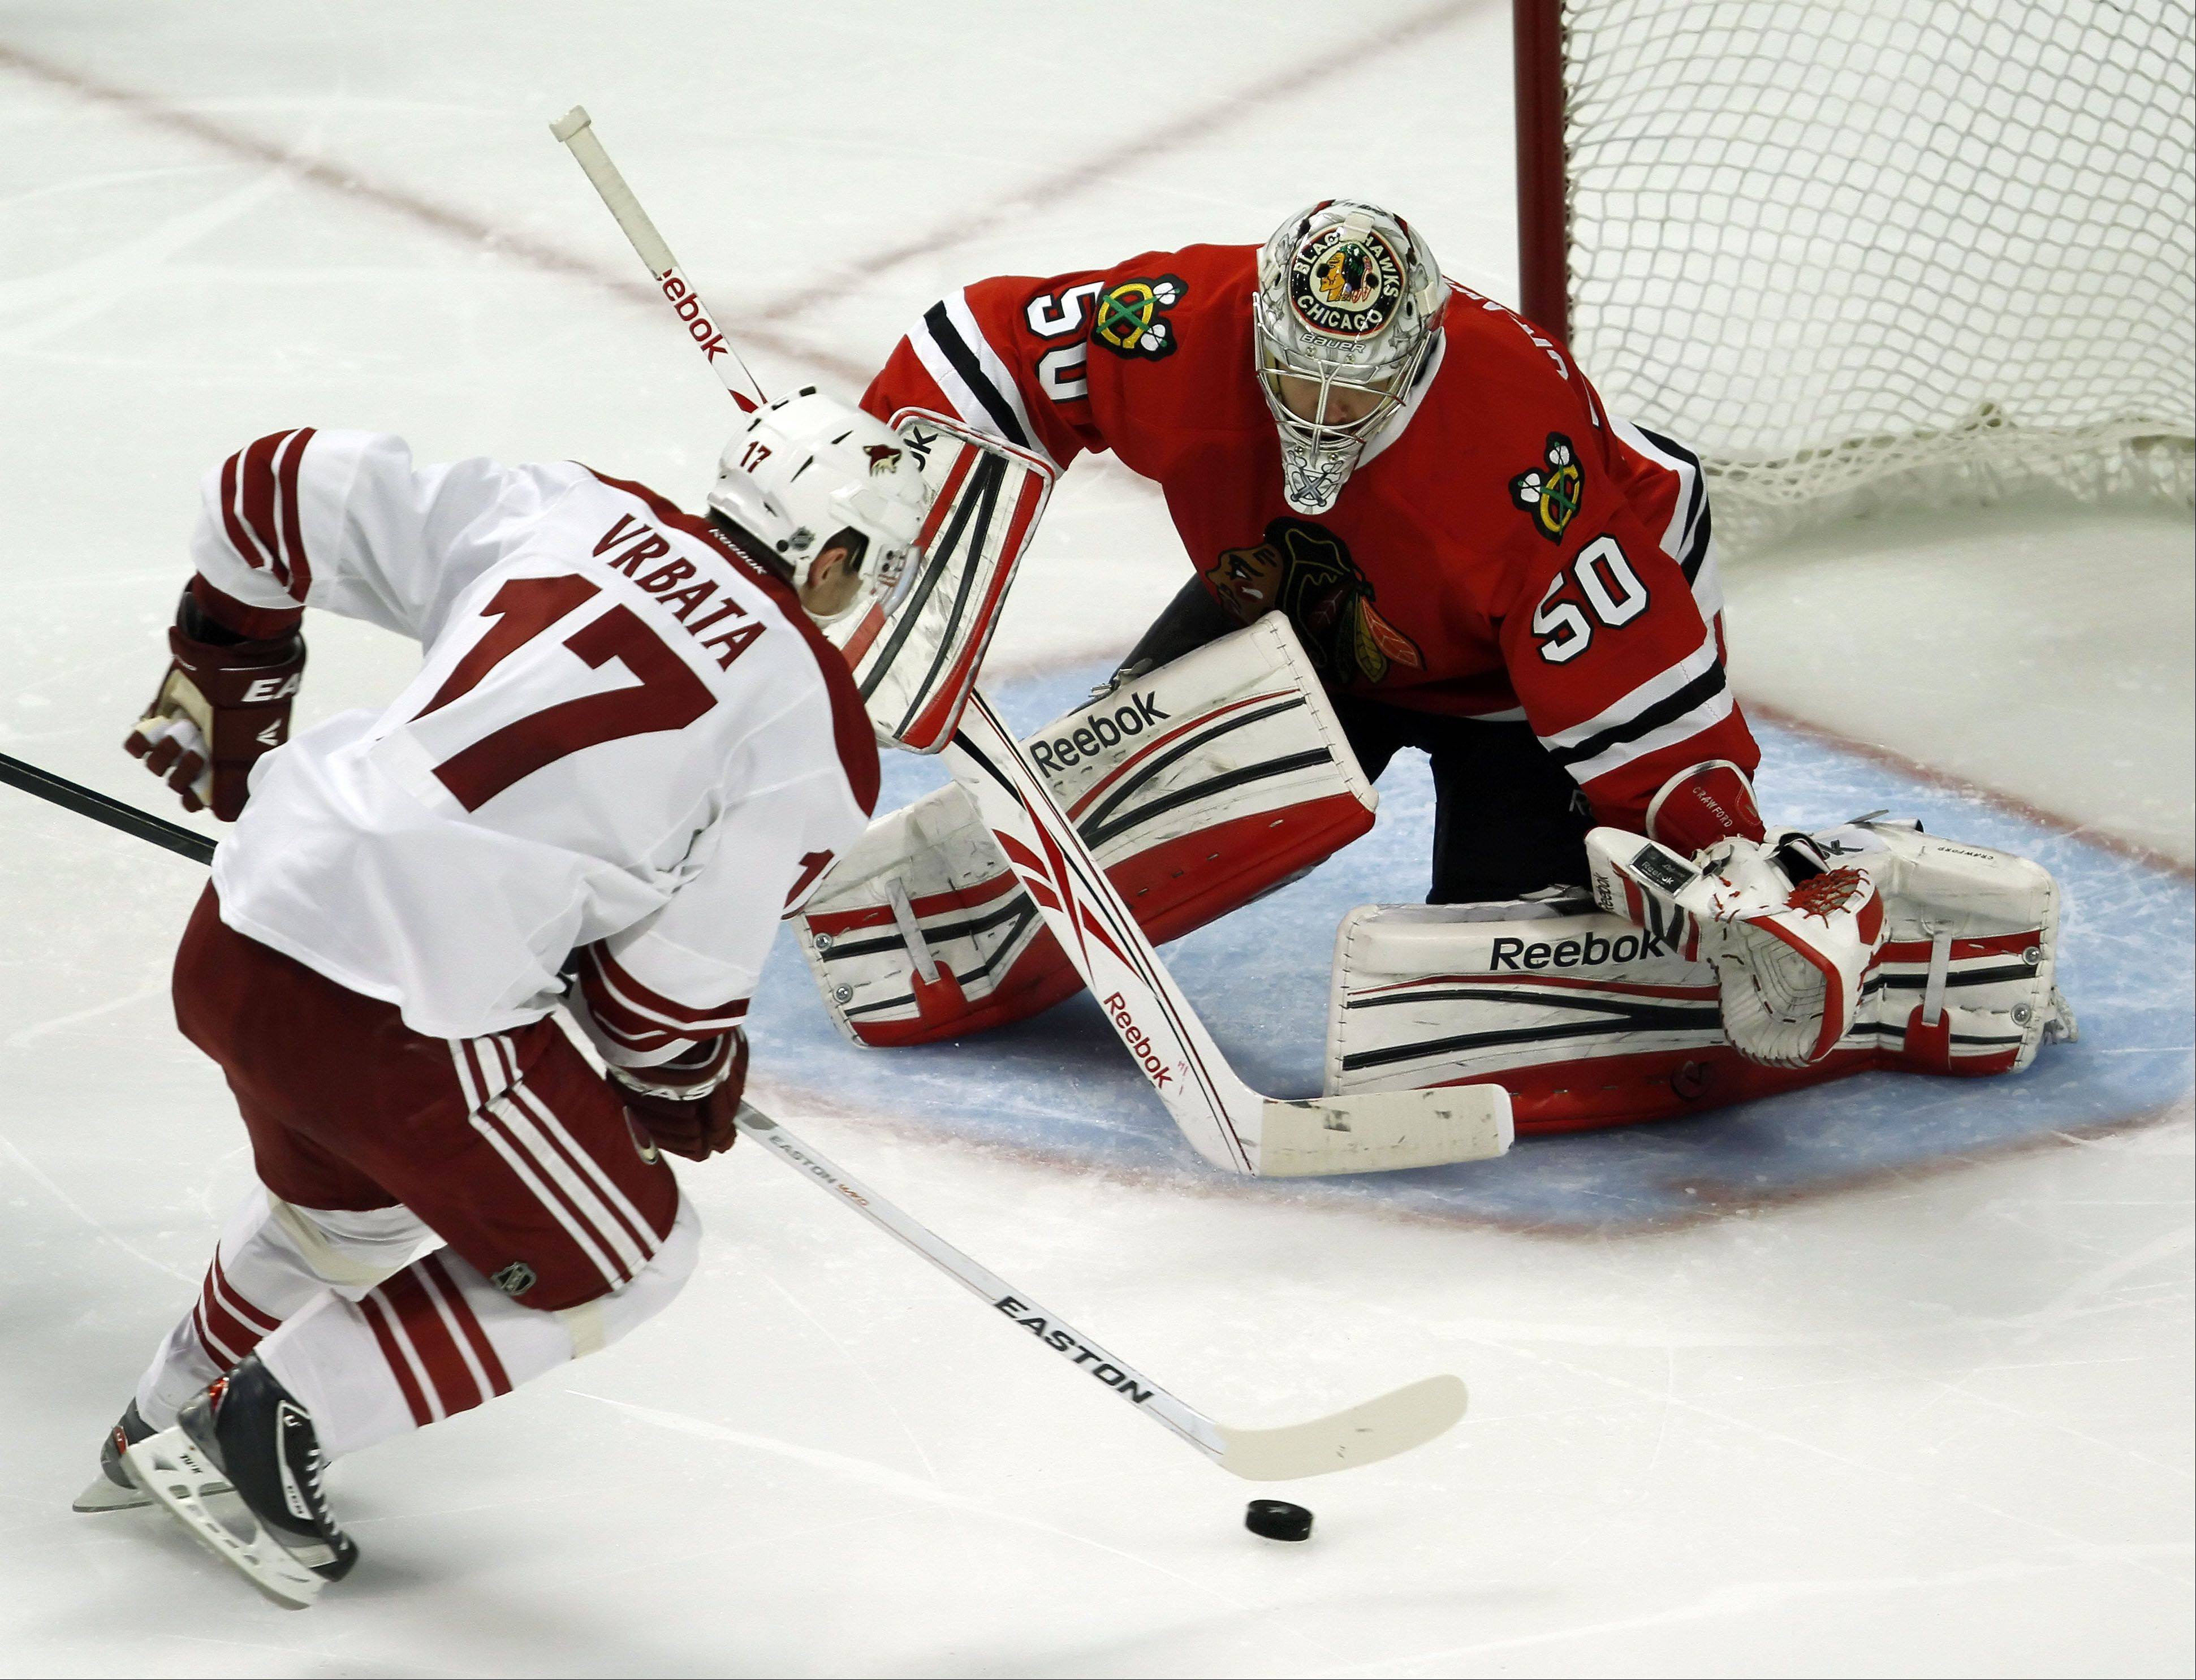 Phoenix Coyotes' right wing Radim Vrbata drives on Chicago Blackhawks' goalie Corey Crawford.